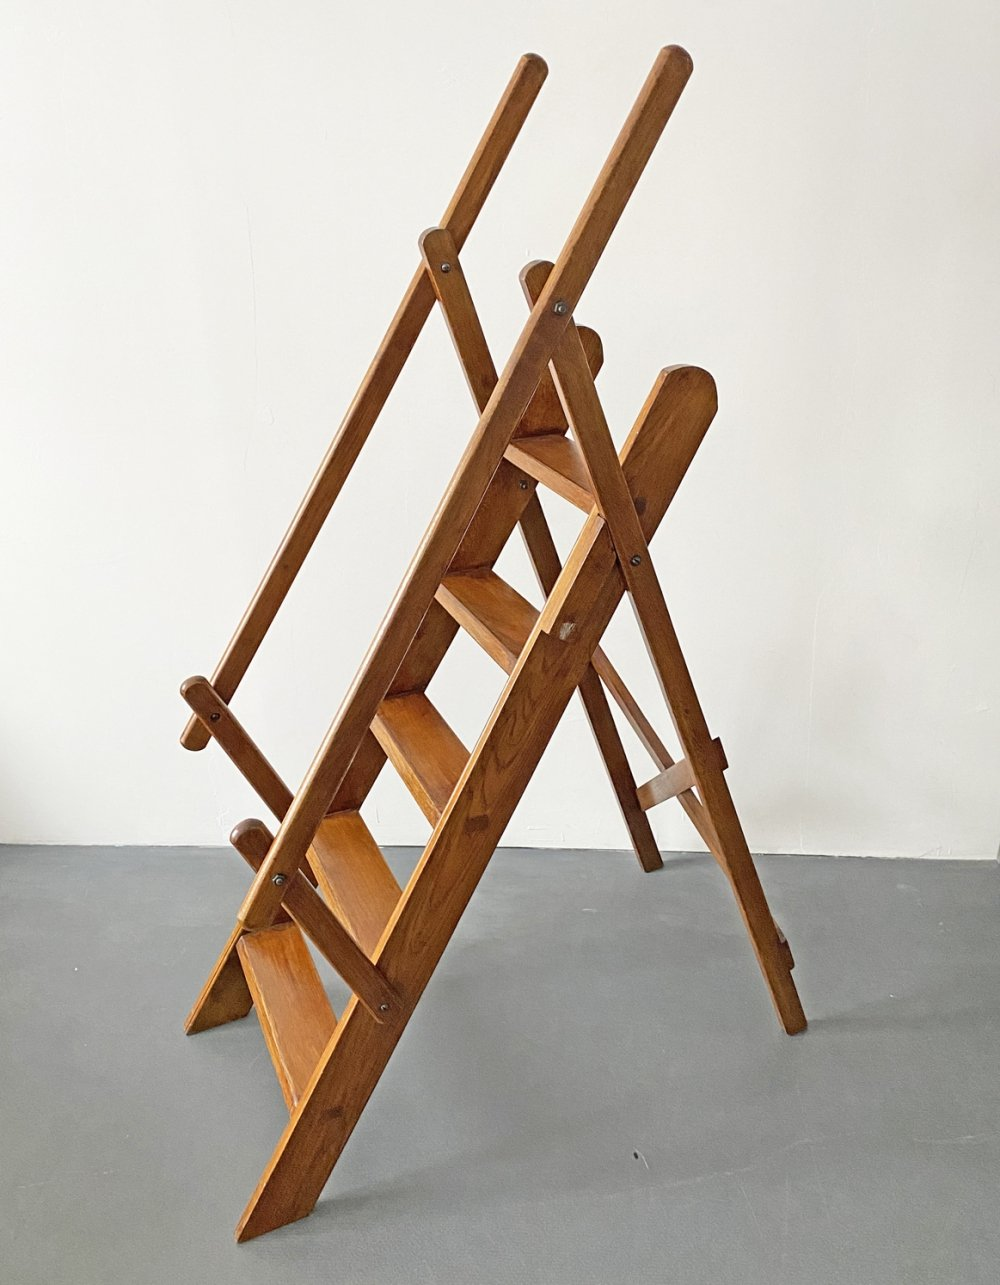 5-Step Library Manager Ladder in Brown Beech Wood with Railing, France 1970s